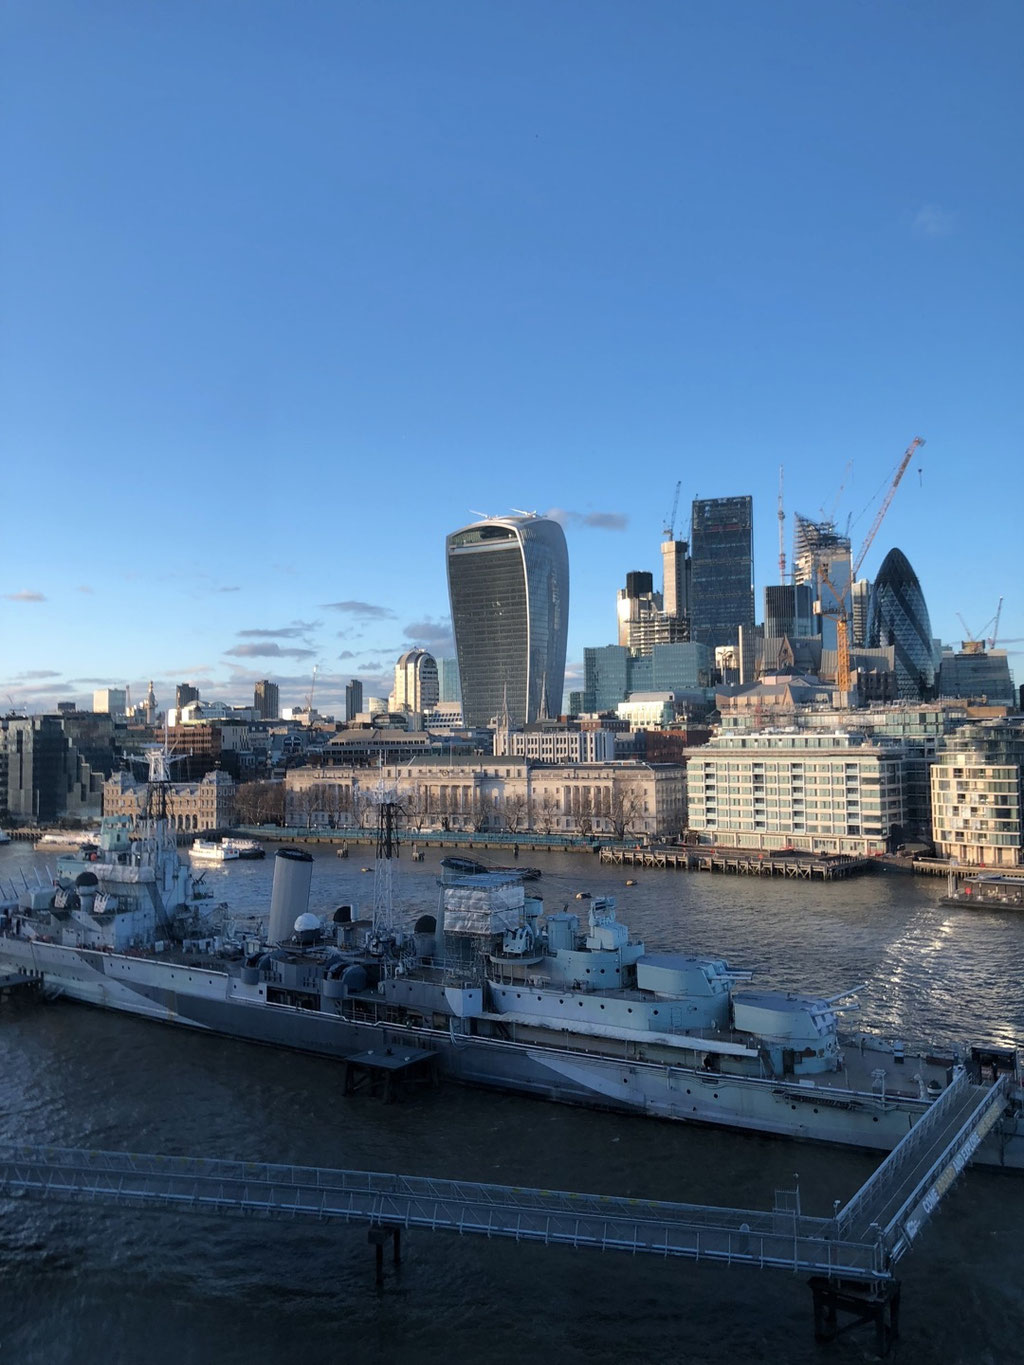 The great view from London & Partners, where the launch is held